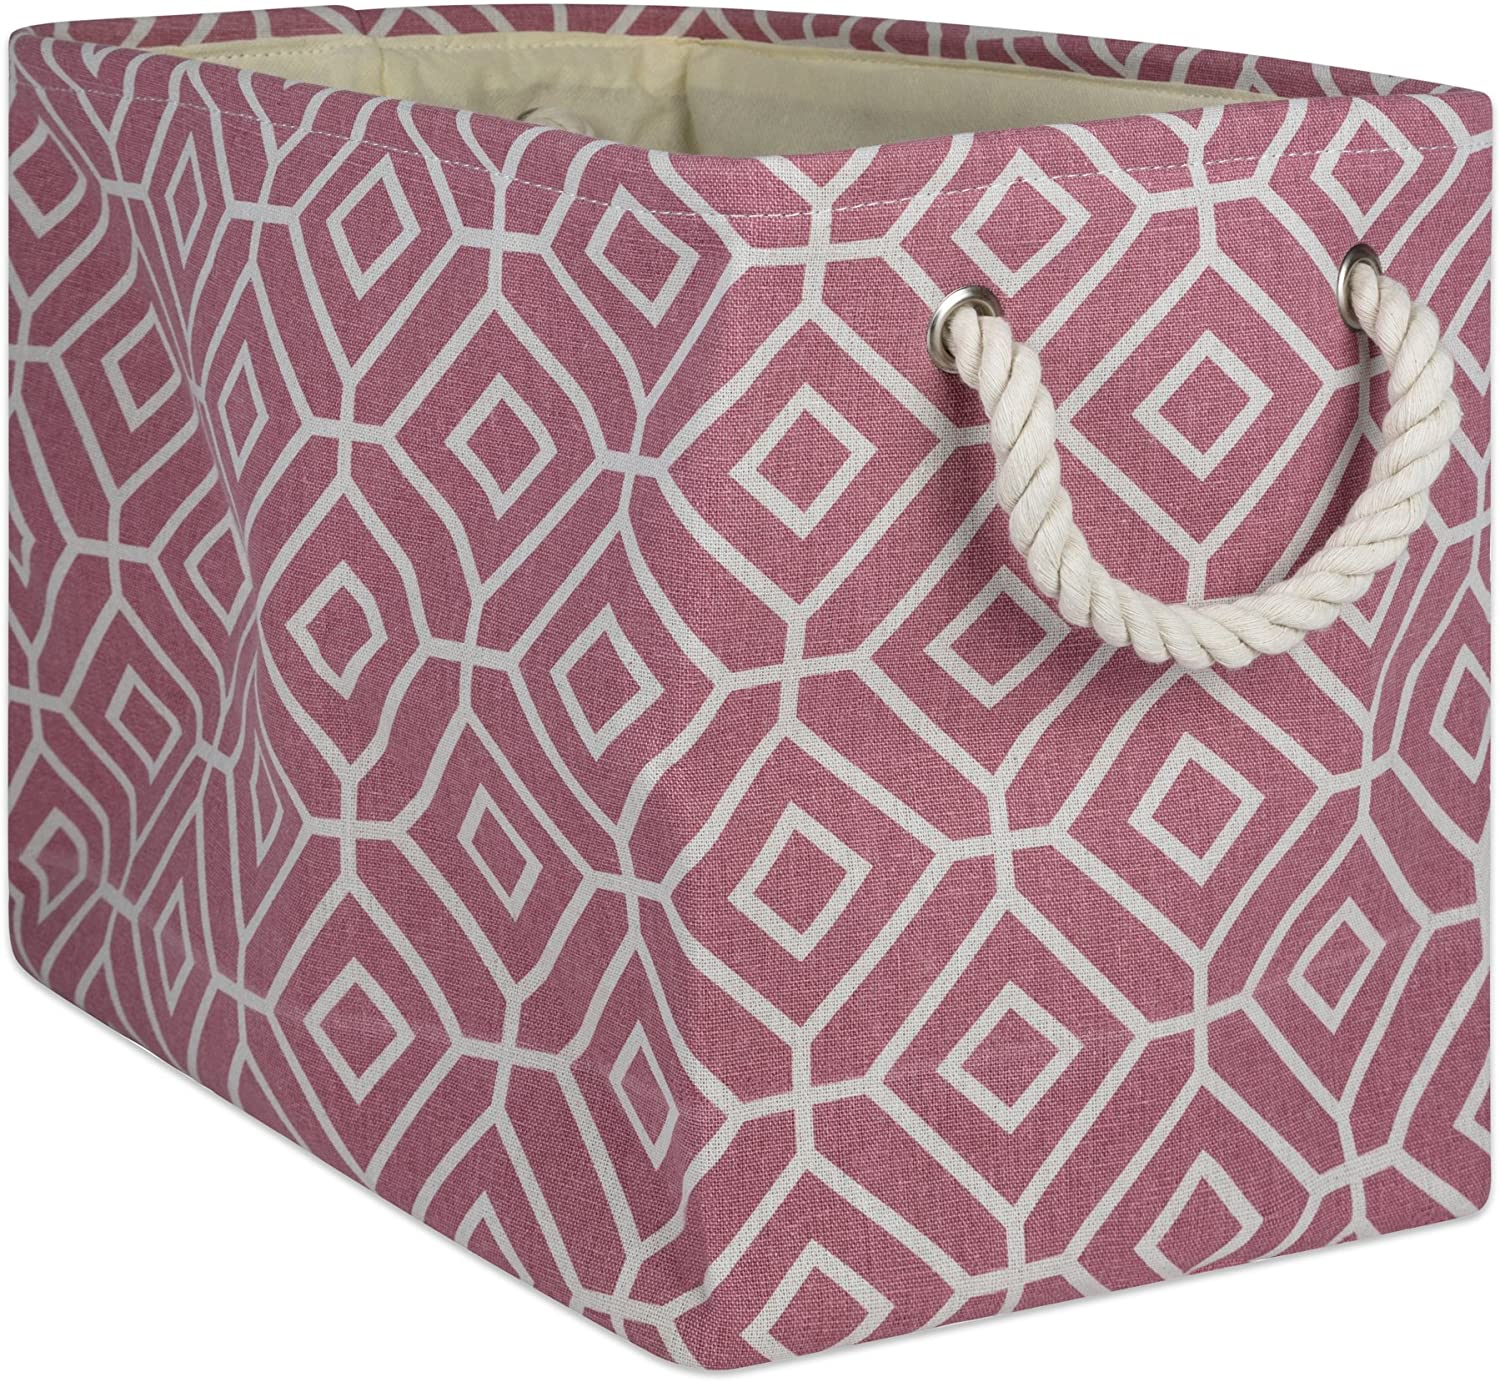 DII CAMZ10004 Collapsible Polyester Storage Basket Or Bin with Durable Cotton Handles, Home Organizer Solution for Office, Bedroom Closet, Toys, and Laundry, Medium-16x10x12, Stained Glass Rose